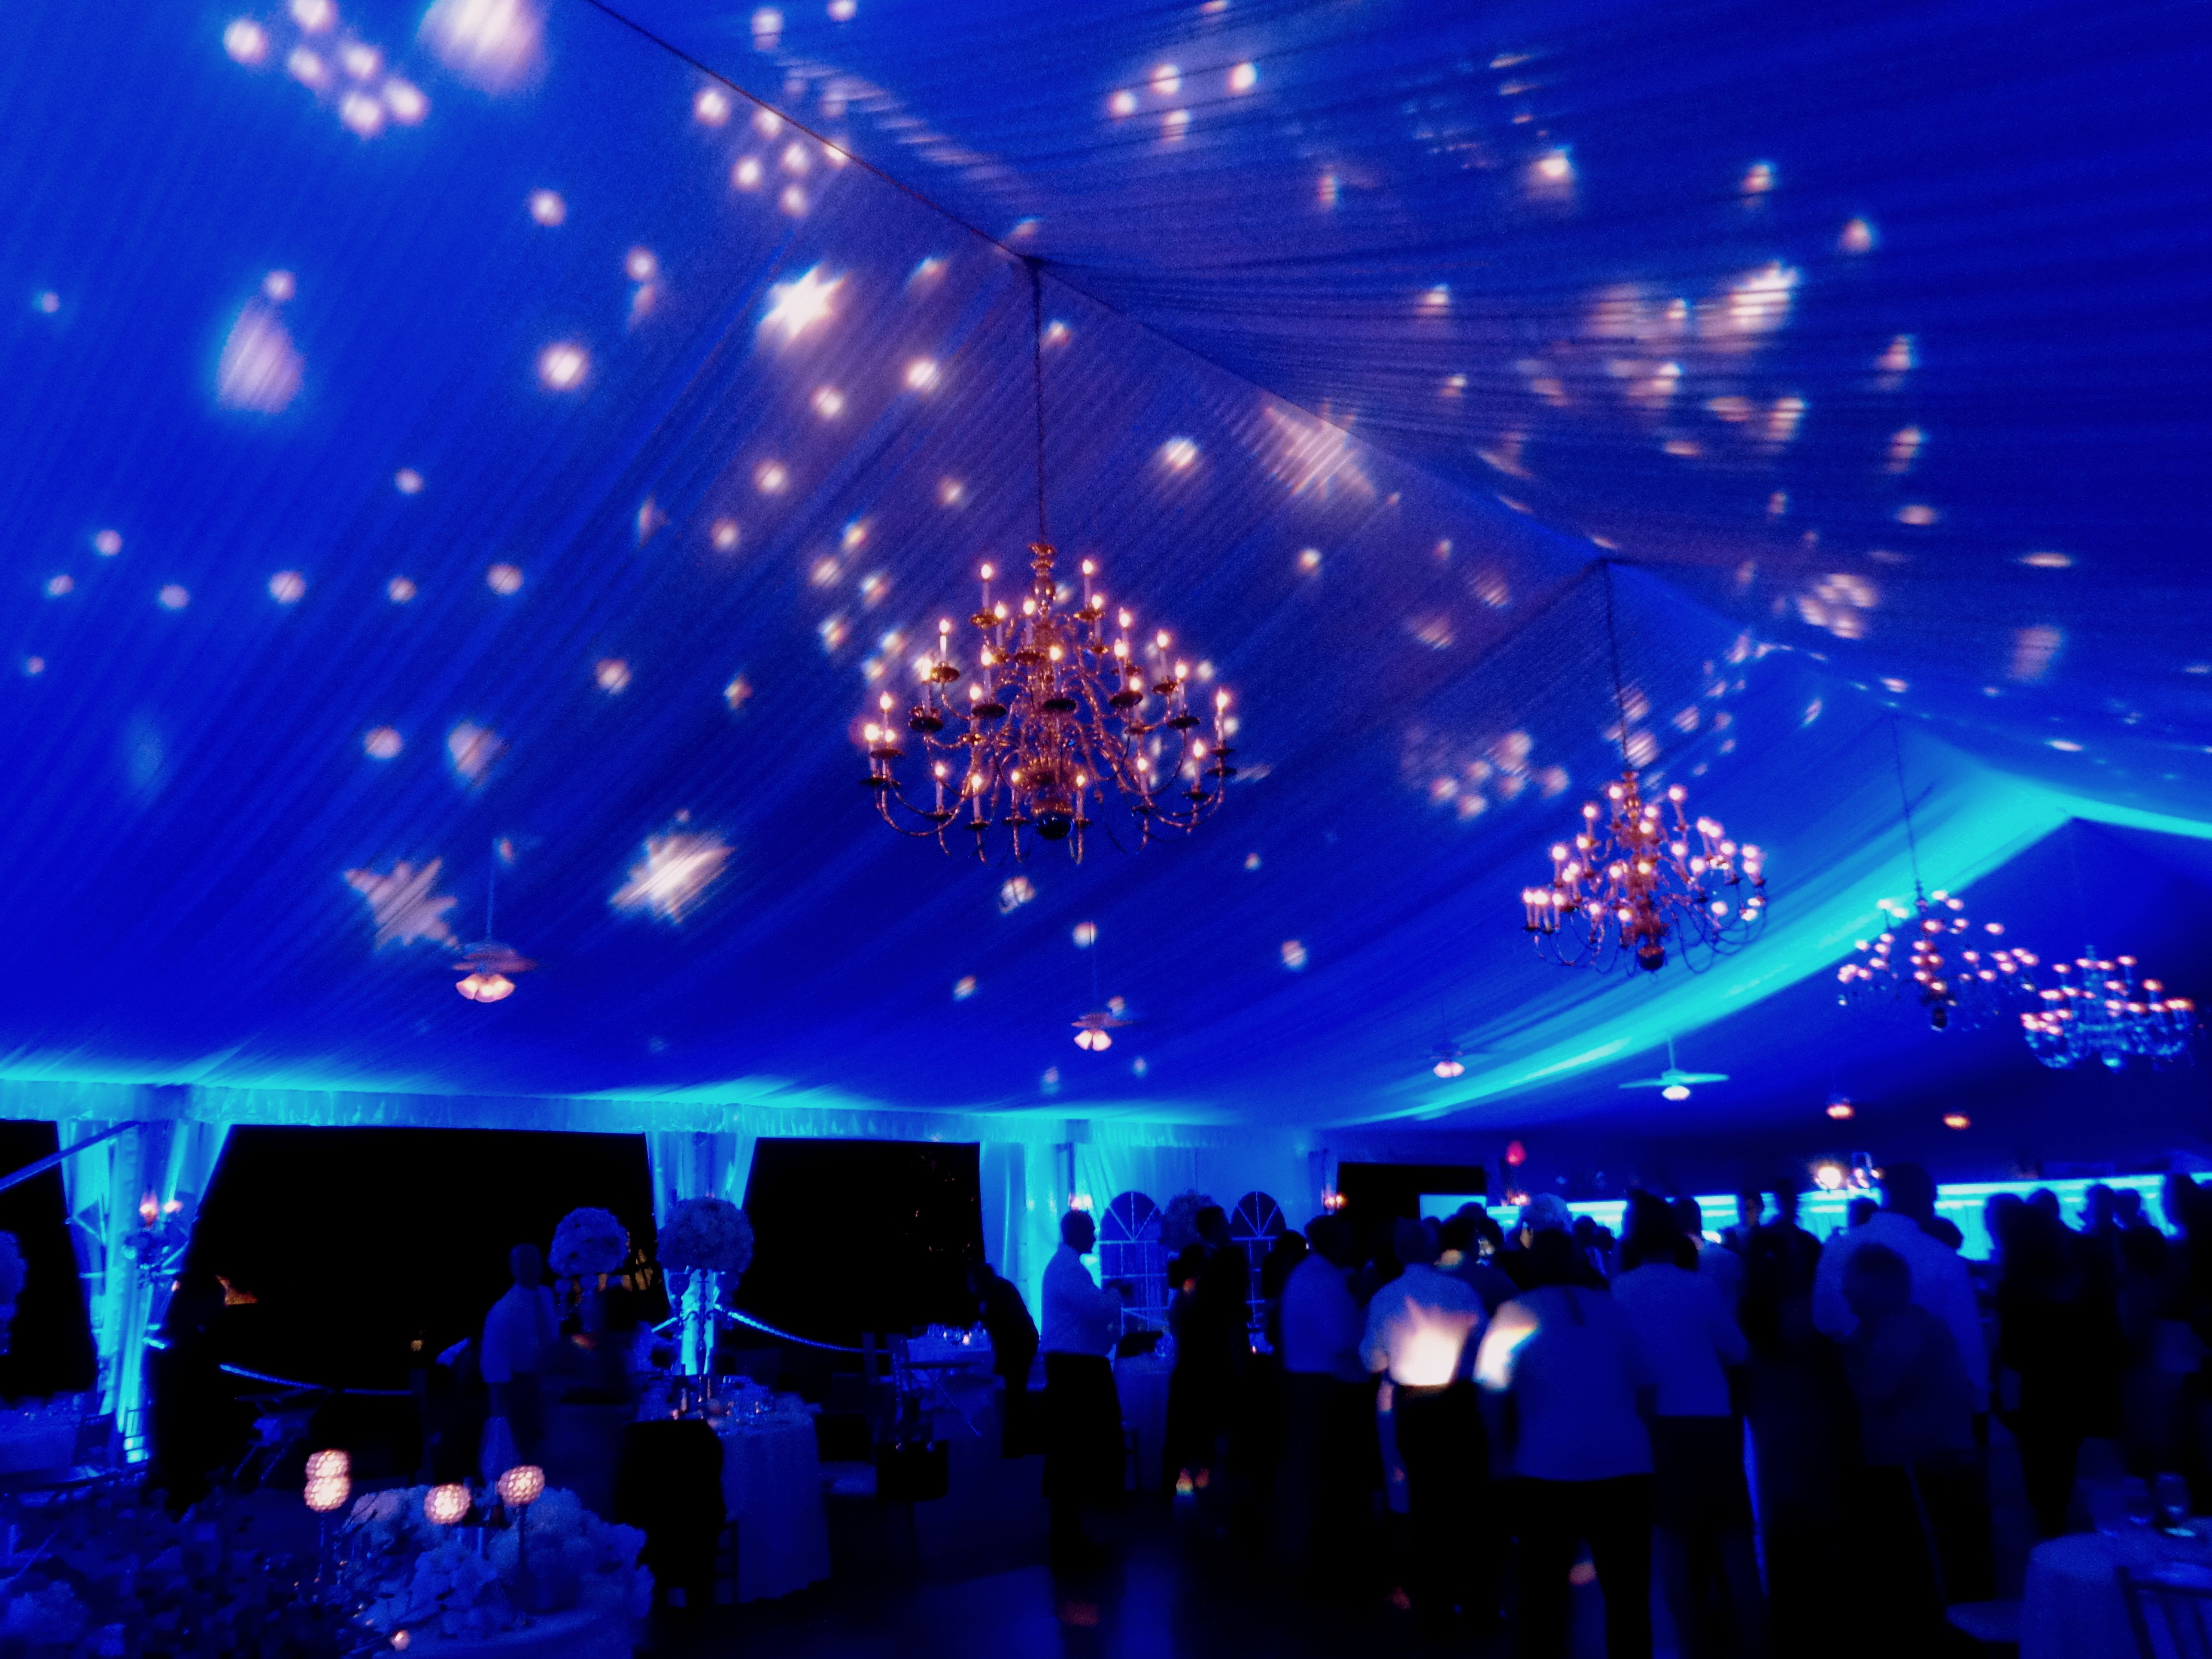 Night linight light outdoors - Starry Night Ceiling Projections With Blue Lighting In The Grandview Outdoor Ballroom By Hourglasslighting